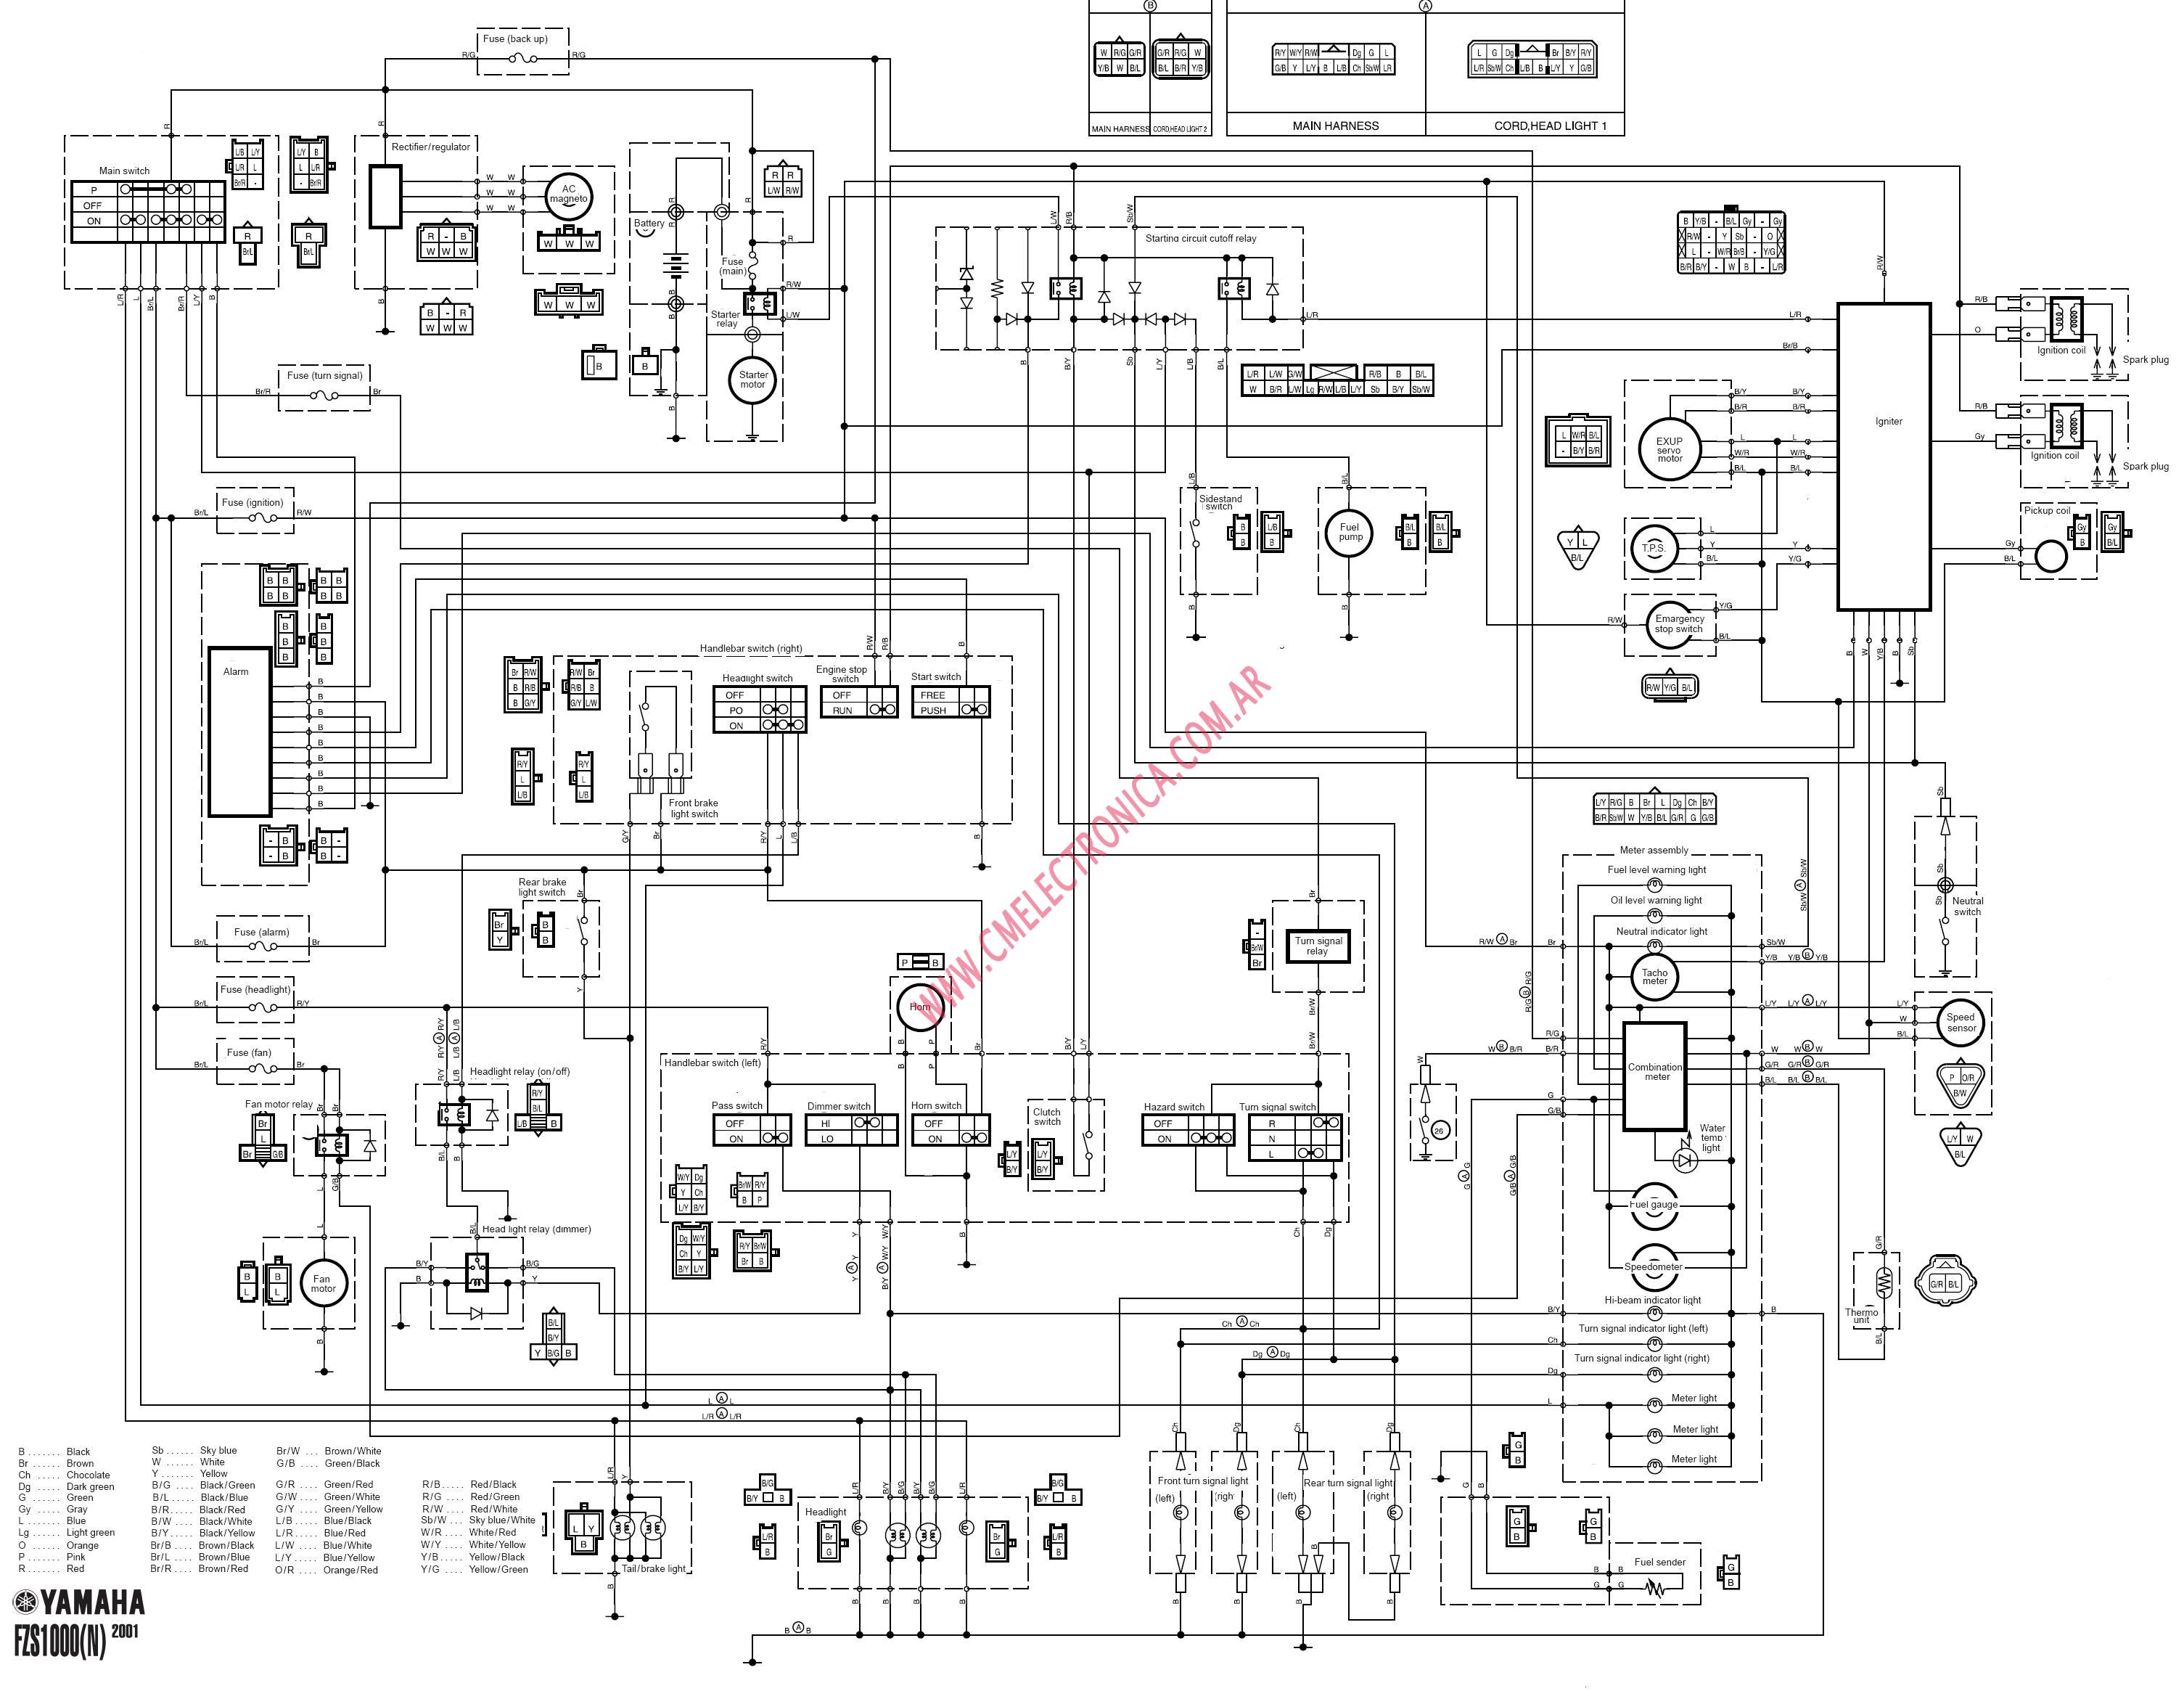 1986 Yamaha Fazer Wiring Diagrams Control Diagram American Standard Thermostat Asystat 606 Polaris 700 Jet Ski Engine Free Image For